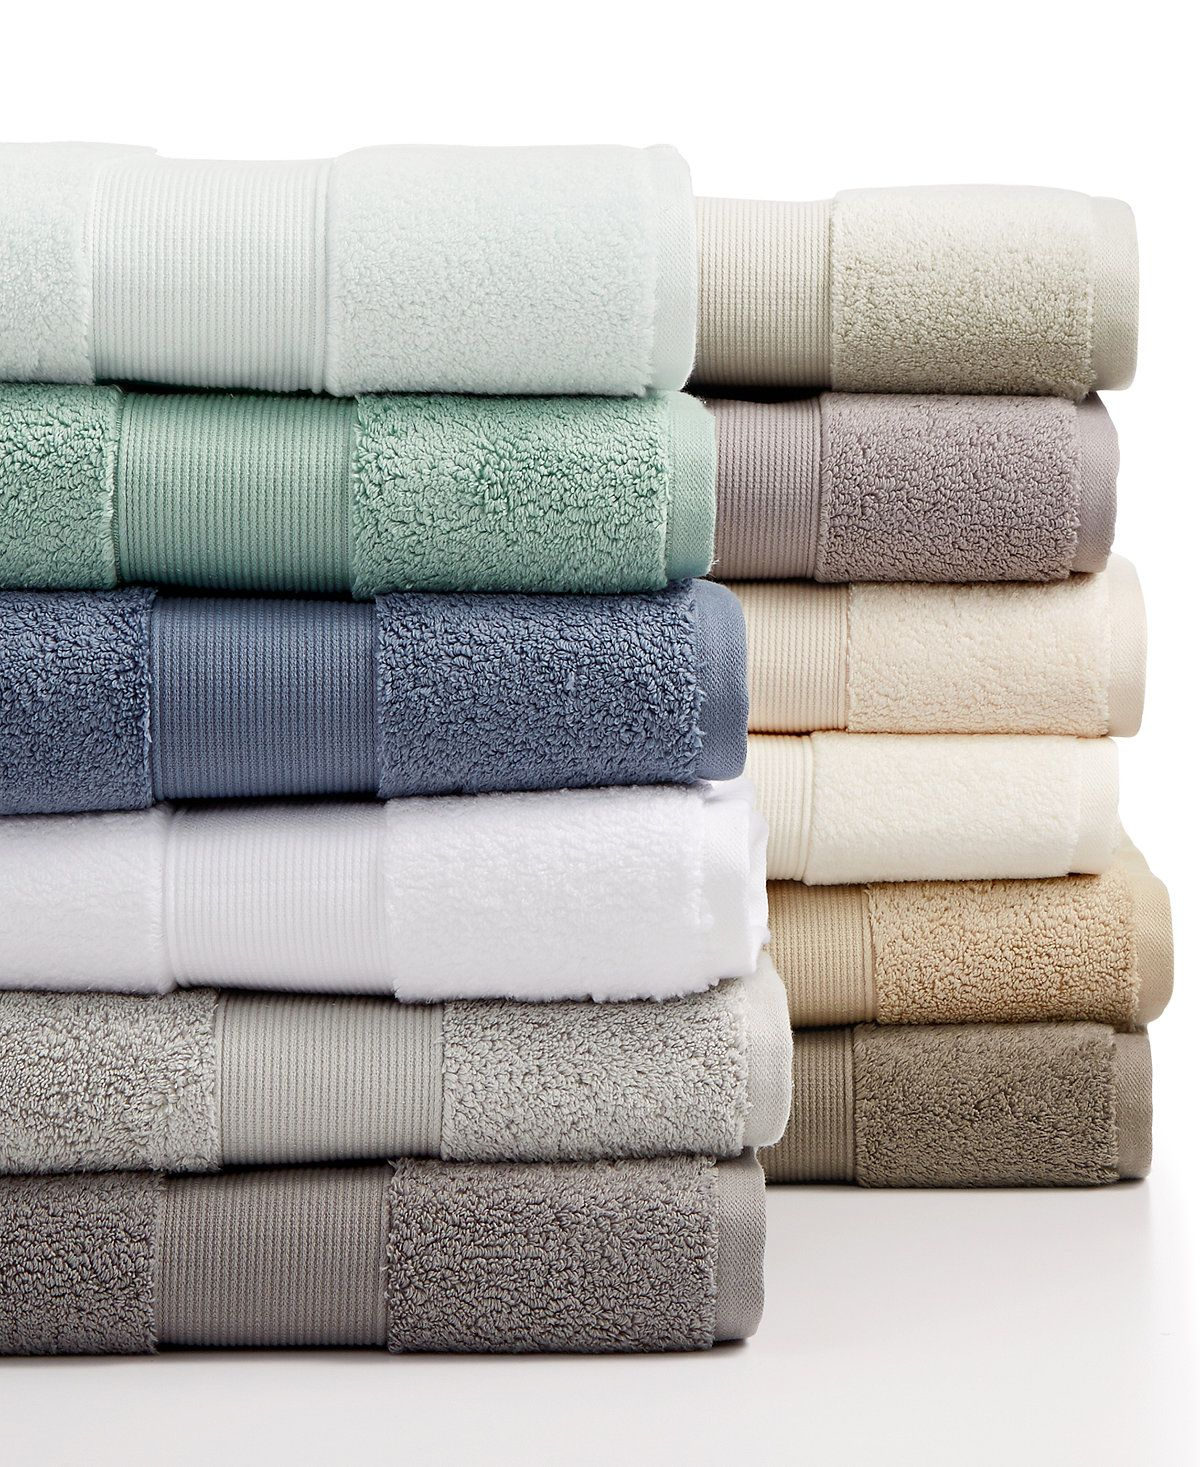 Hotel Collection Premier Microcotton Bath Towel Collection I Love